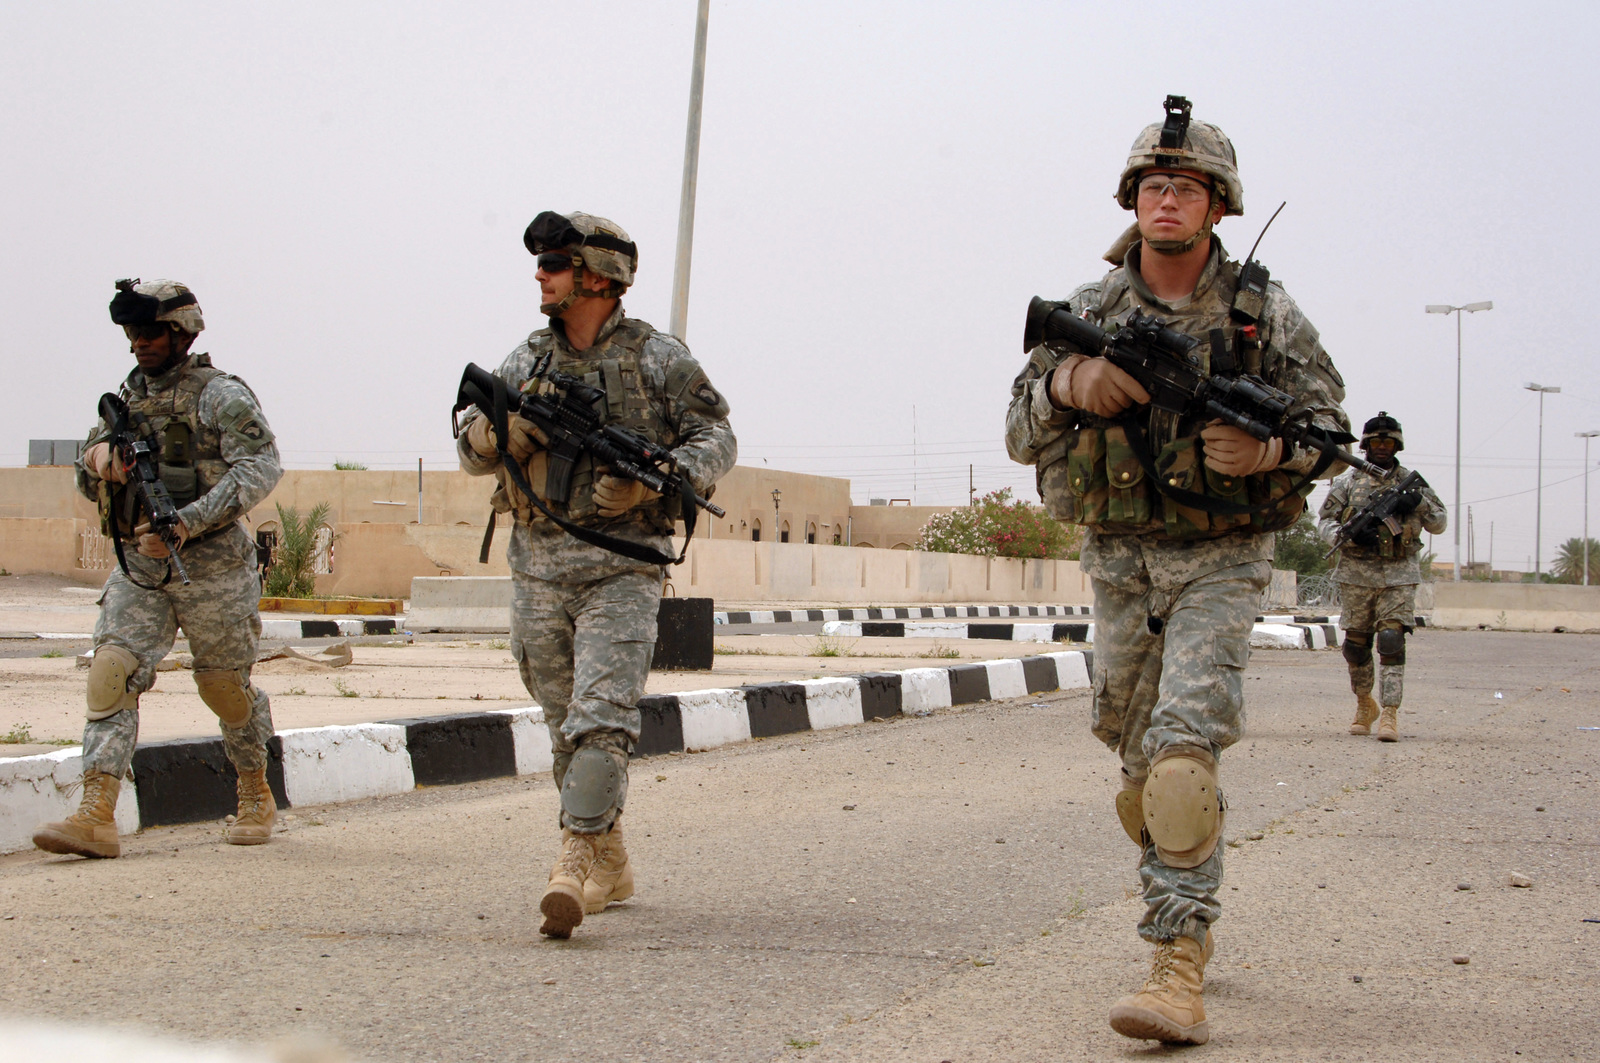 U S  Army Soldiers from 3-320th Field Artillery, 101st